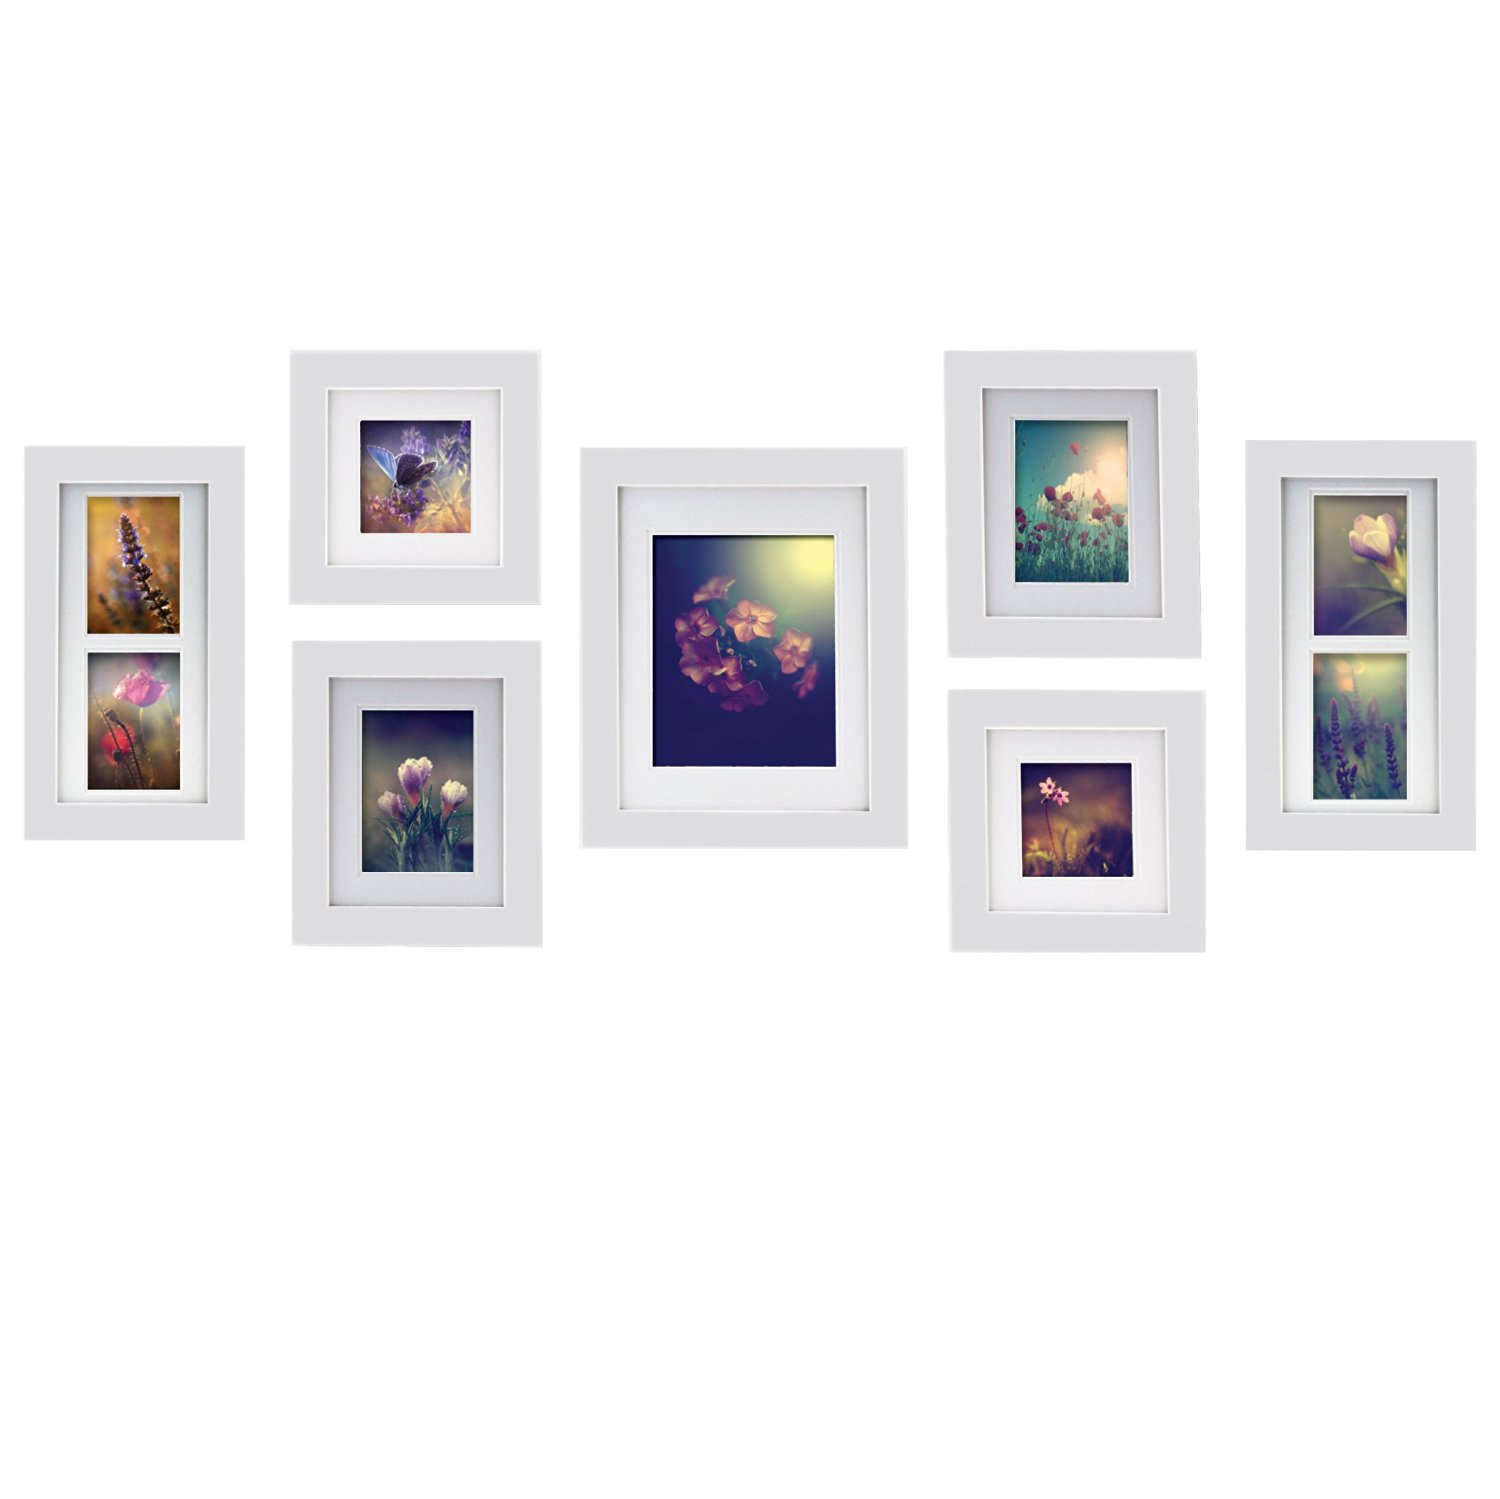 Gallery Perfect 7 Piece White Wood Photo Frame Wall Gallery Kit. Includes: Frames, Hanging Wall Template, Decorative Art Prints and Hanging Hardware